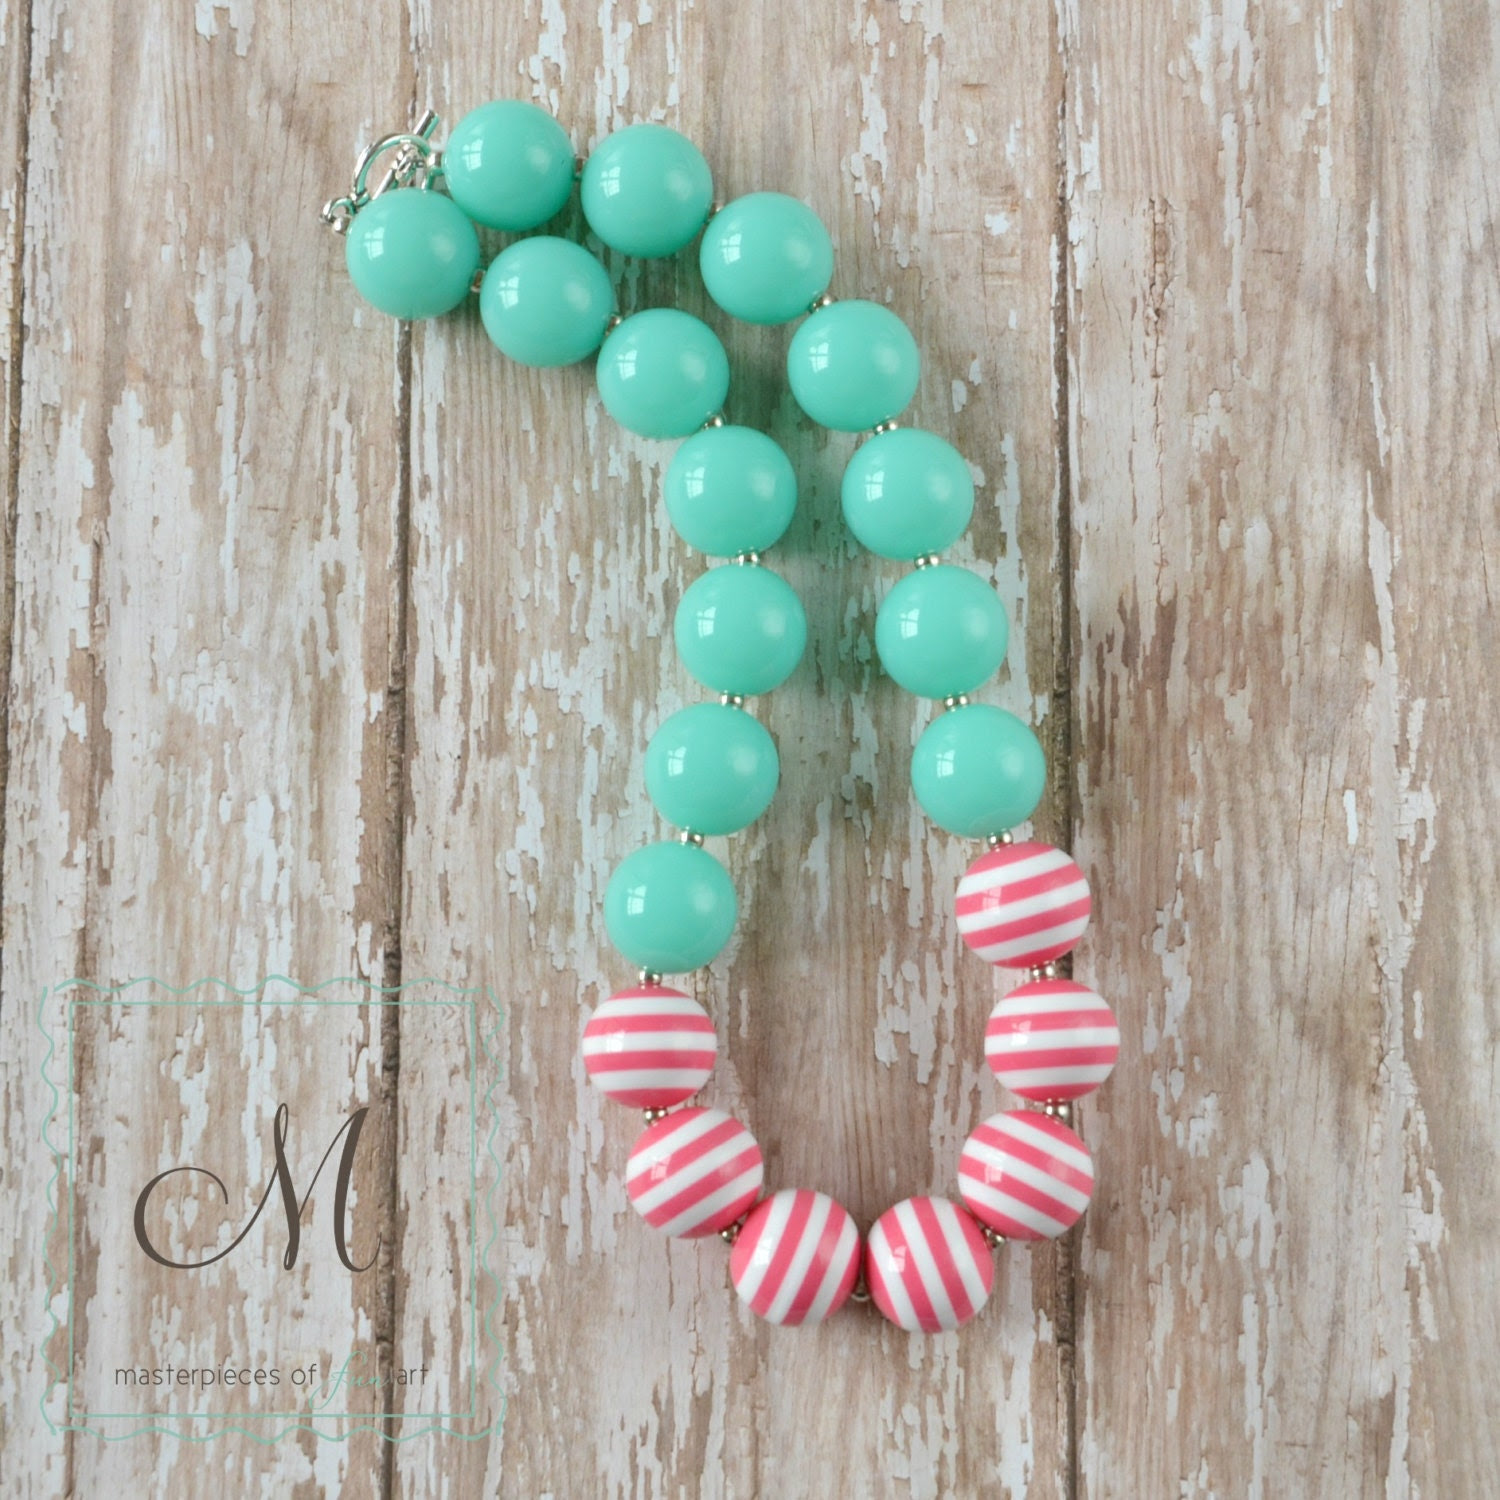 Aqua and Hot Pink Stripes Chunky Beads Girls Necklace - Super cute for Summer - MasterpiecesOfFunArt